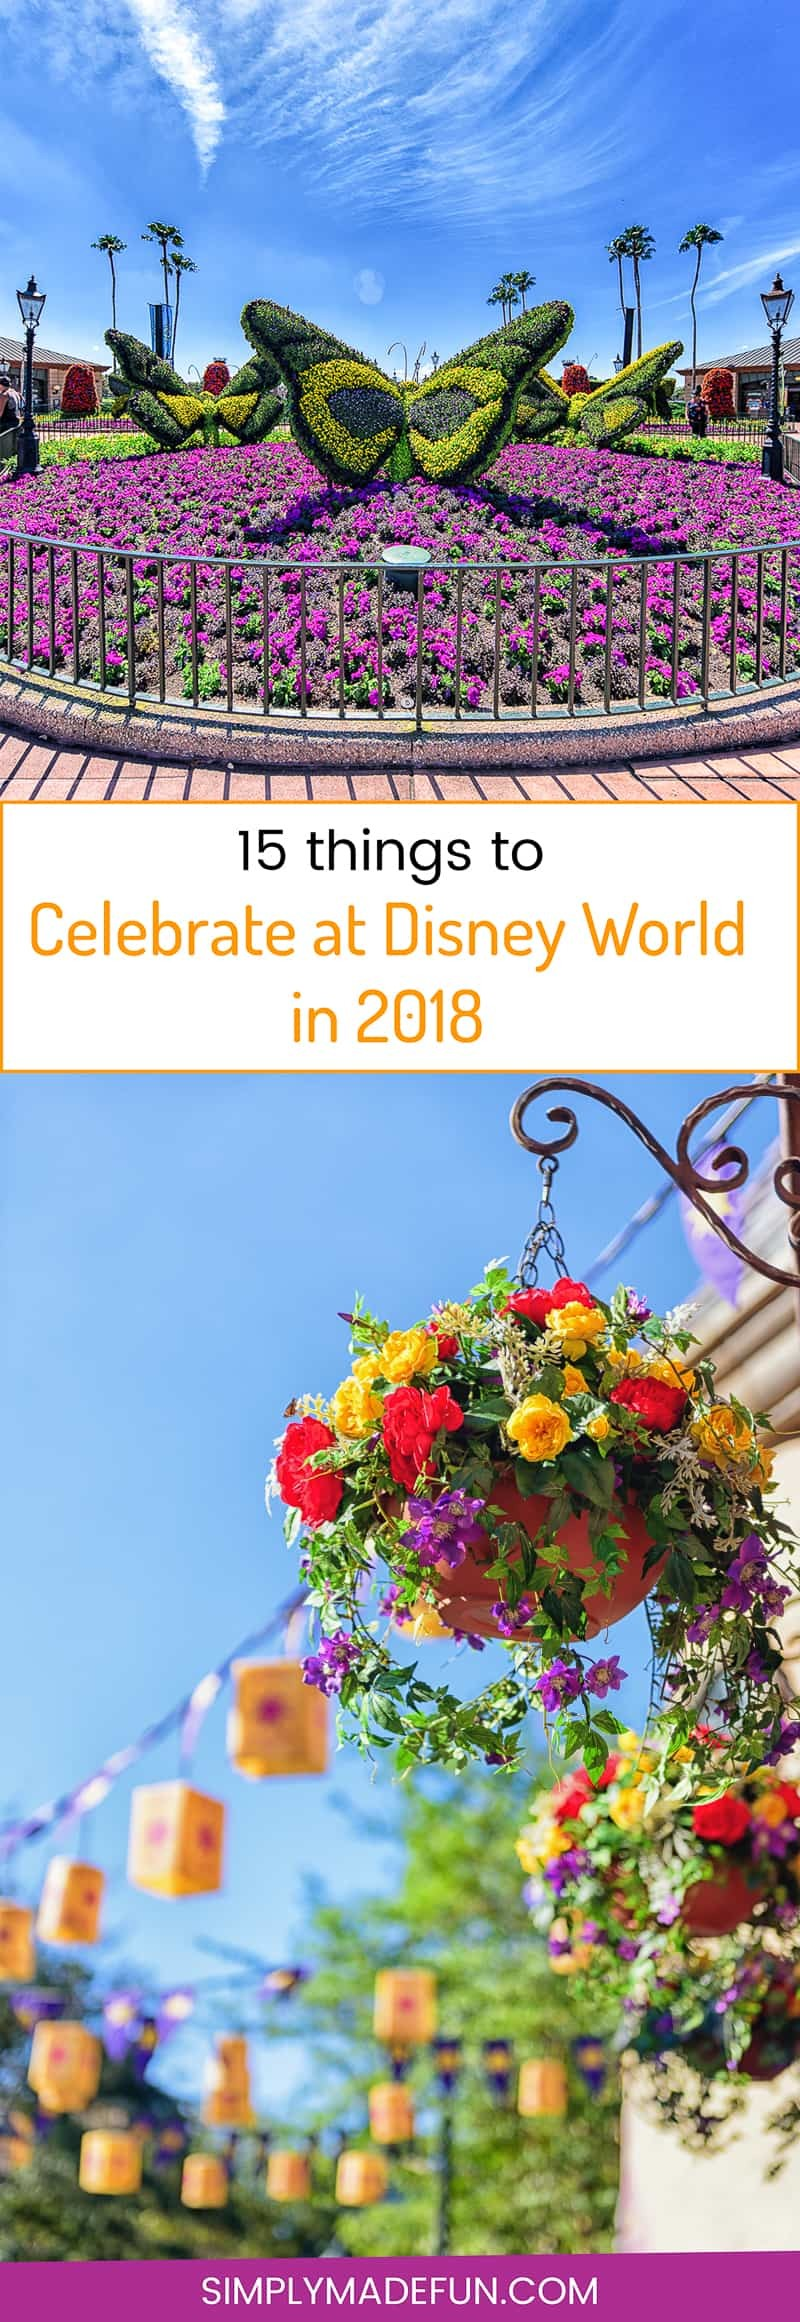 Celebrate at Disney World in 2018 - There are new and exciting things happening at Disney World this year as well as some fun old celebrations and activities coming back to the parks. Check out all the reasons why 2018 should be the year YOU celebrate your family vacation at Disney World!